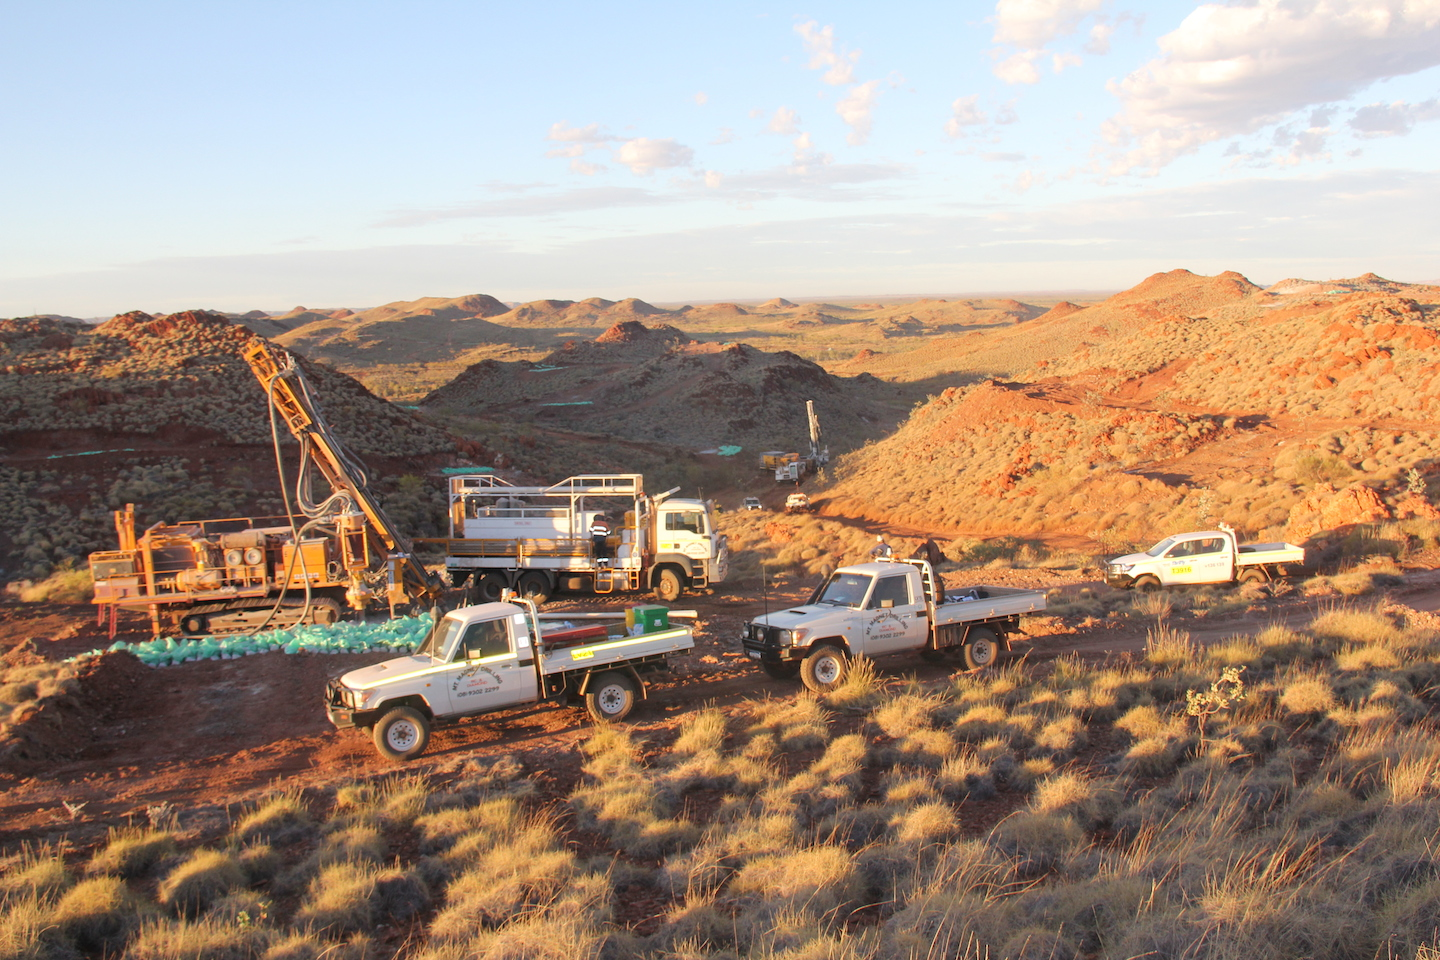 pilbara minerals more than doubles lithium reserves